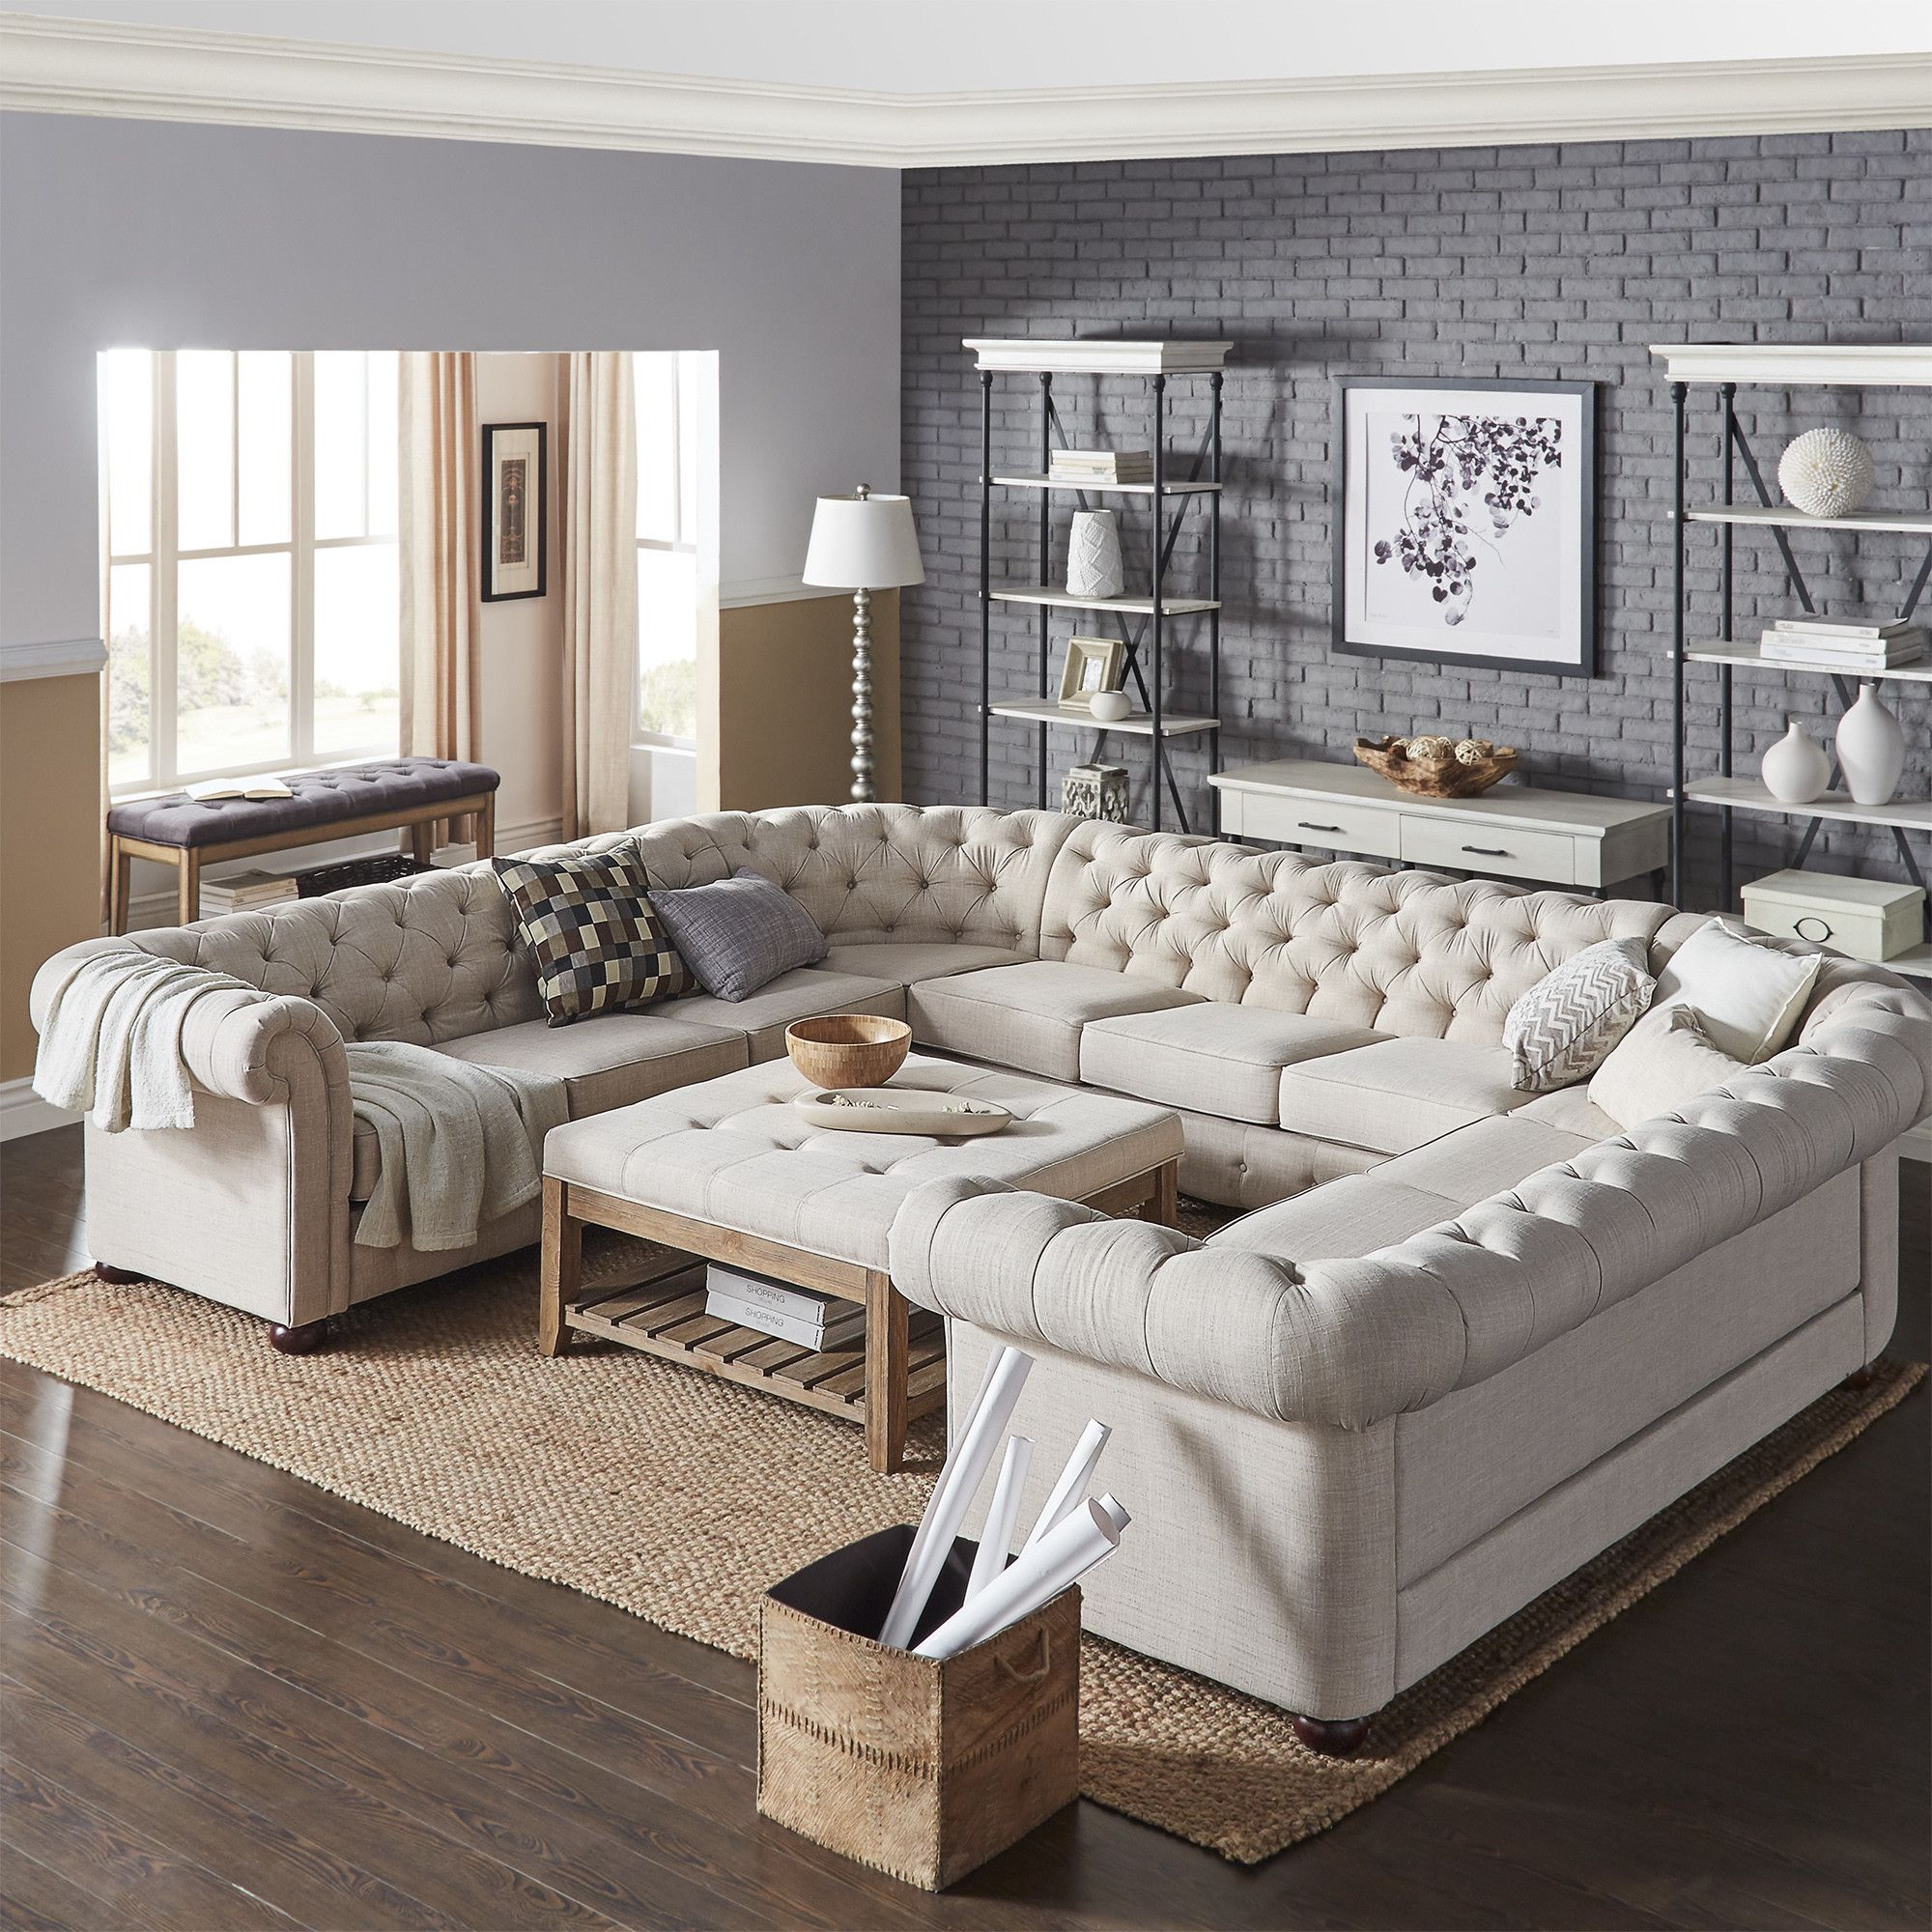 Mona 142 Chesterfield Sectional Sofa Apartment Living Room